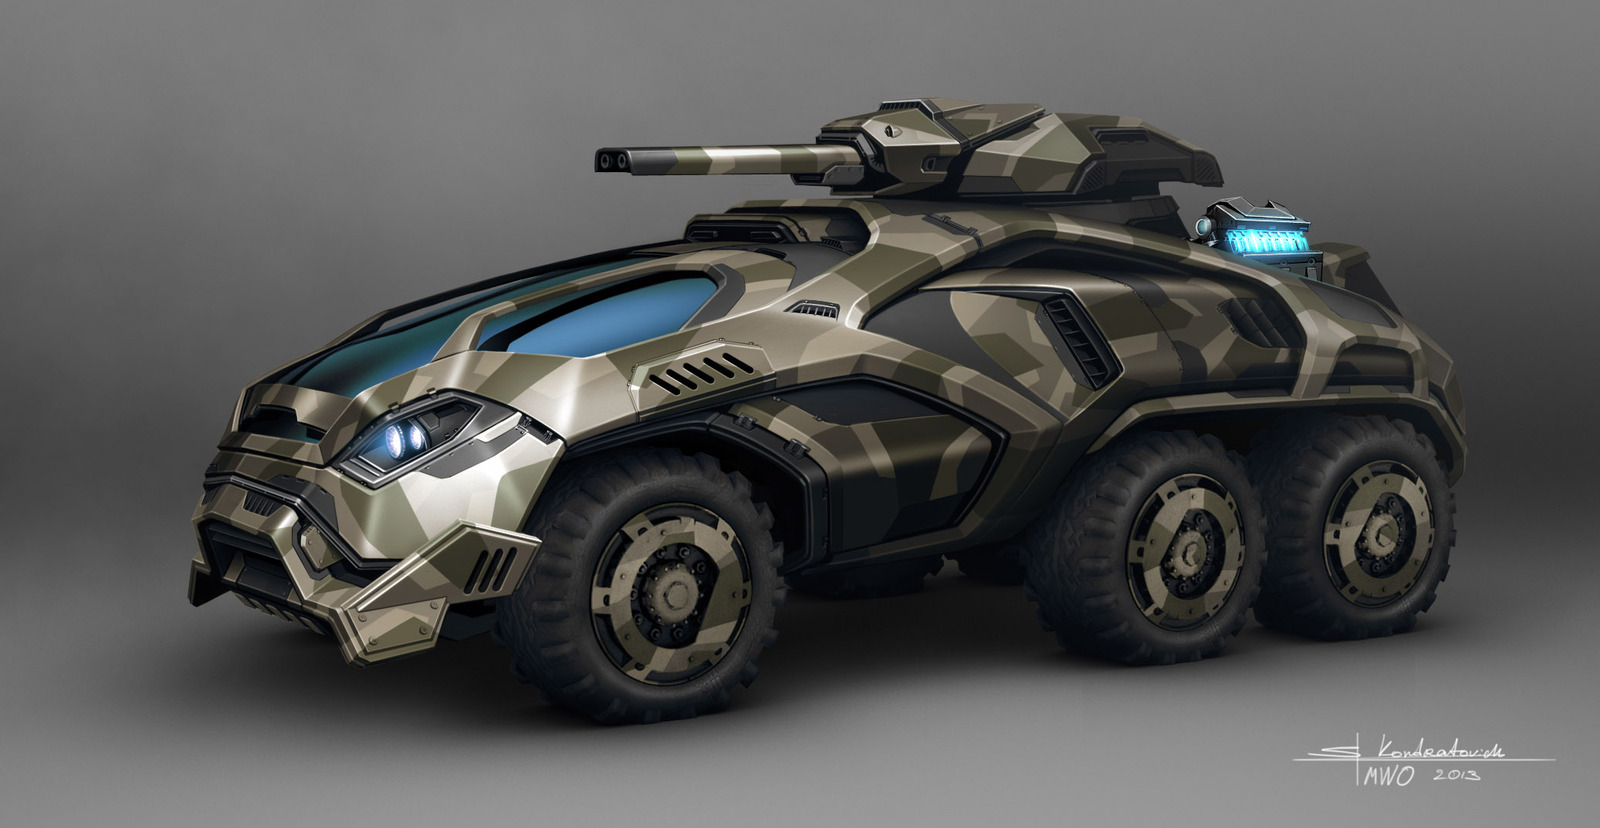 Vehicle Wallpaper And Background Image 1600x828 Id